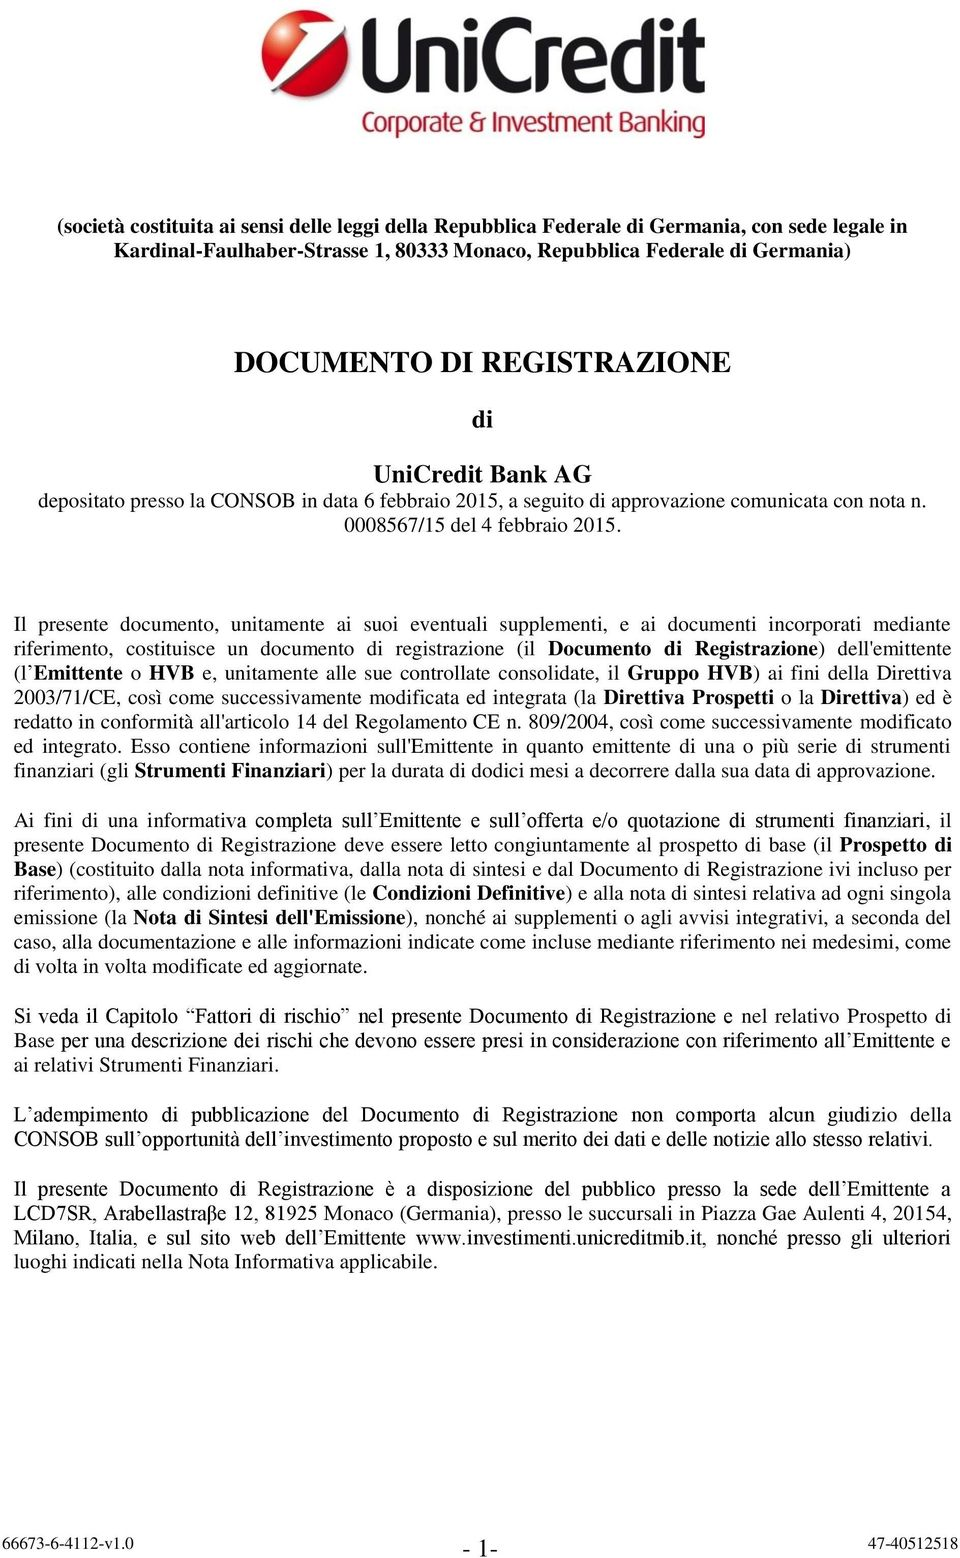 Il presente documento, unitamente ai suoi eventuali supplementi, e ai documenti incorporati mediante riferimento, costituisce un documento di registrazione (il Documento di Registrazione)